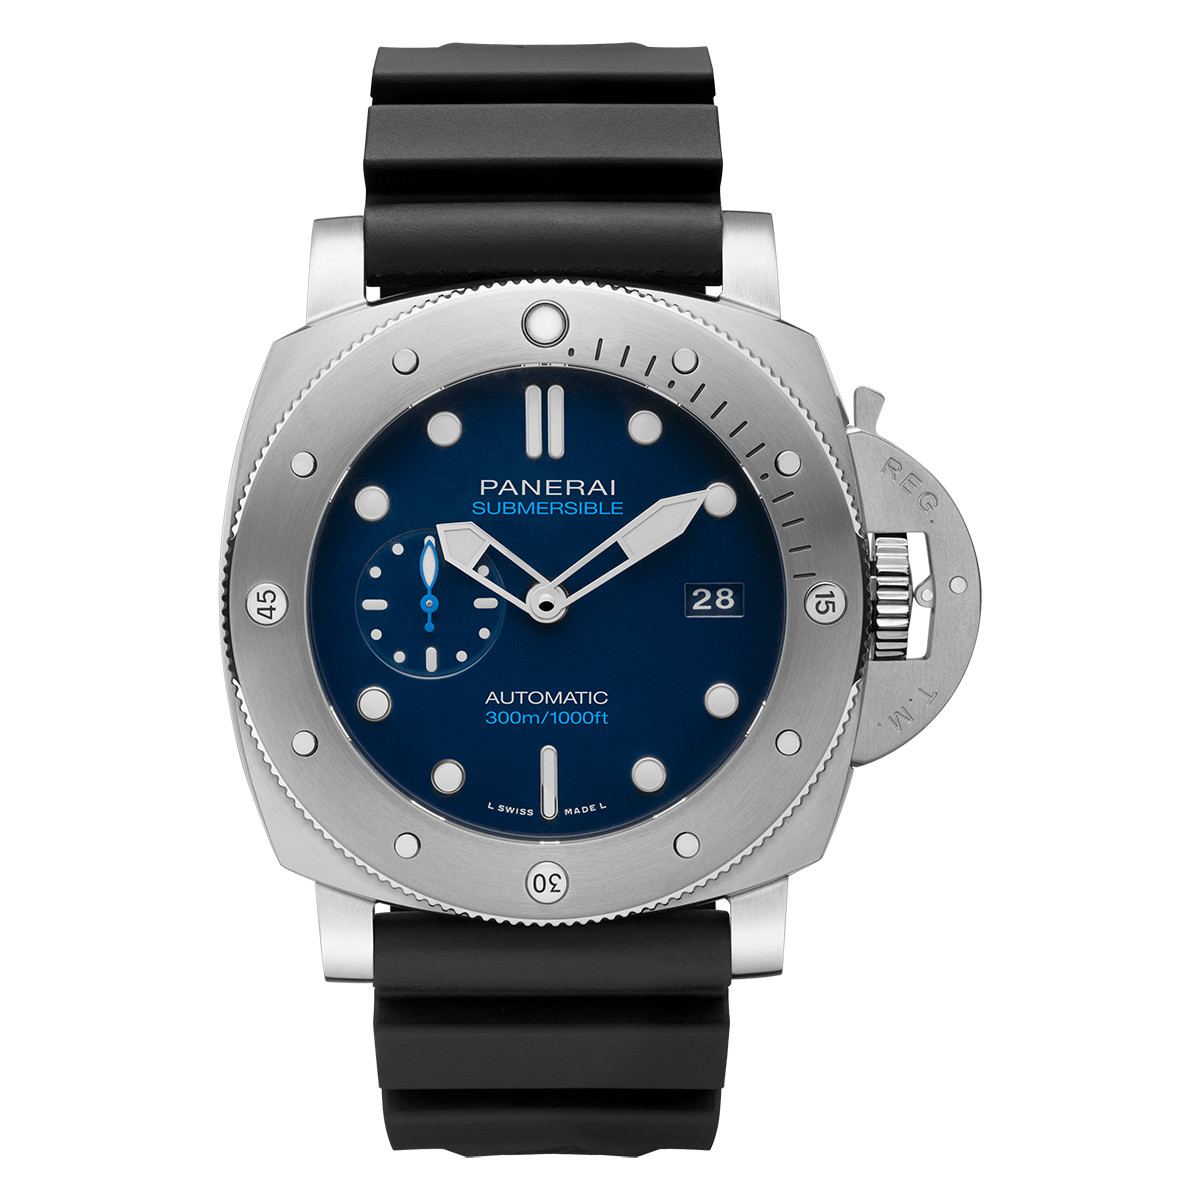 Luminor Submersible BMG-TECH (PAM00692)